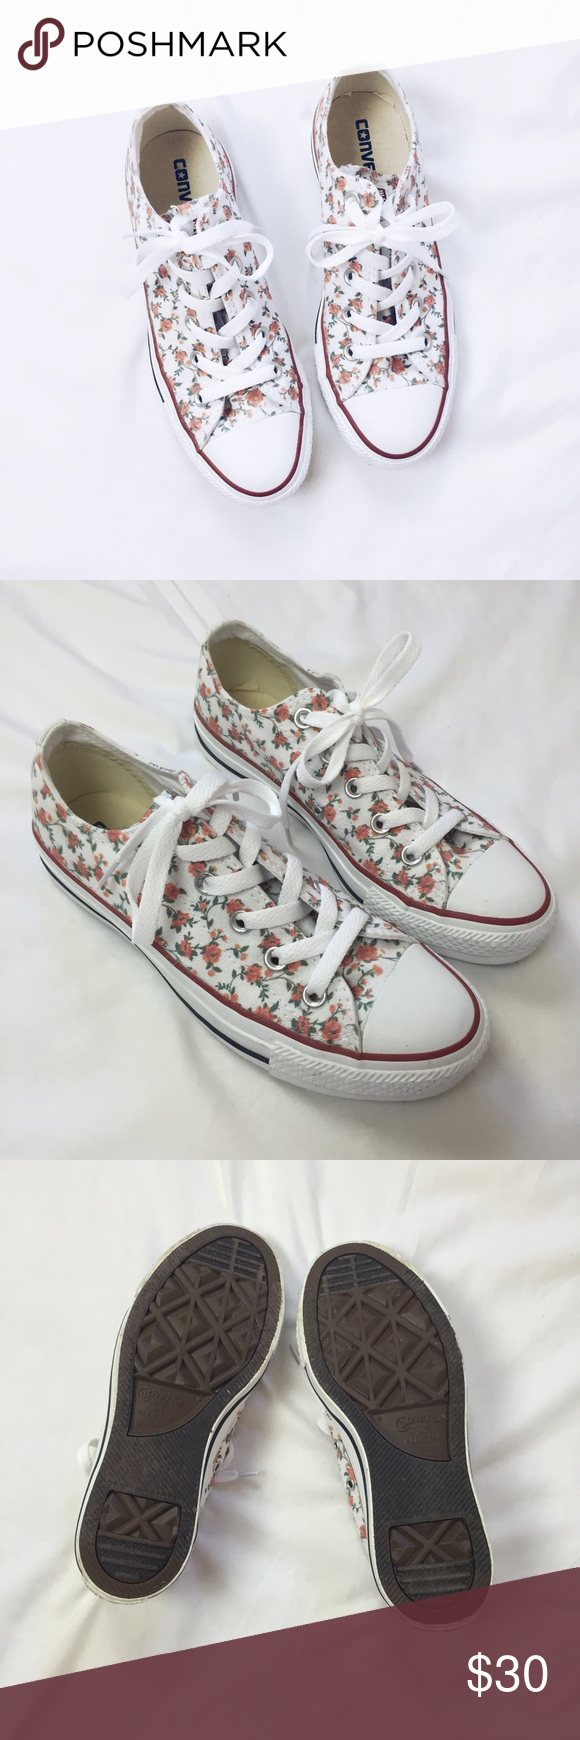 Customized Rose Printed Converse Authentic Converse shoes that are customize printed from qtee.com. Worn outside once but in perfect condition as you can see from the photo of the bottom. Runs true to a women's size 6. Shoes Sneakers